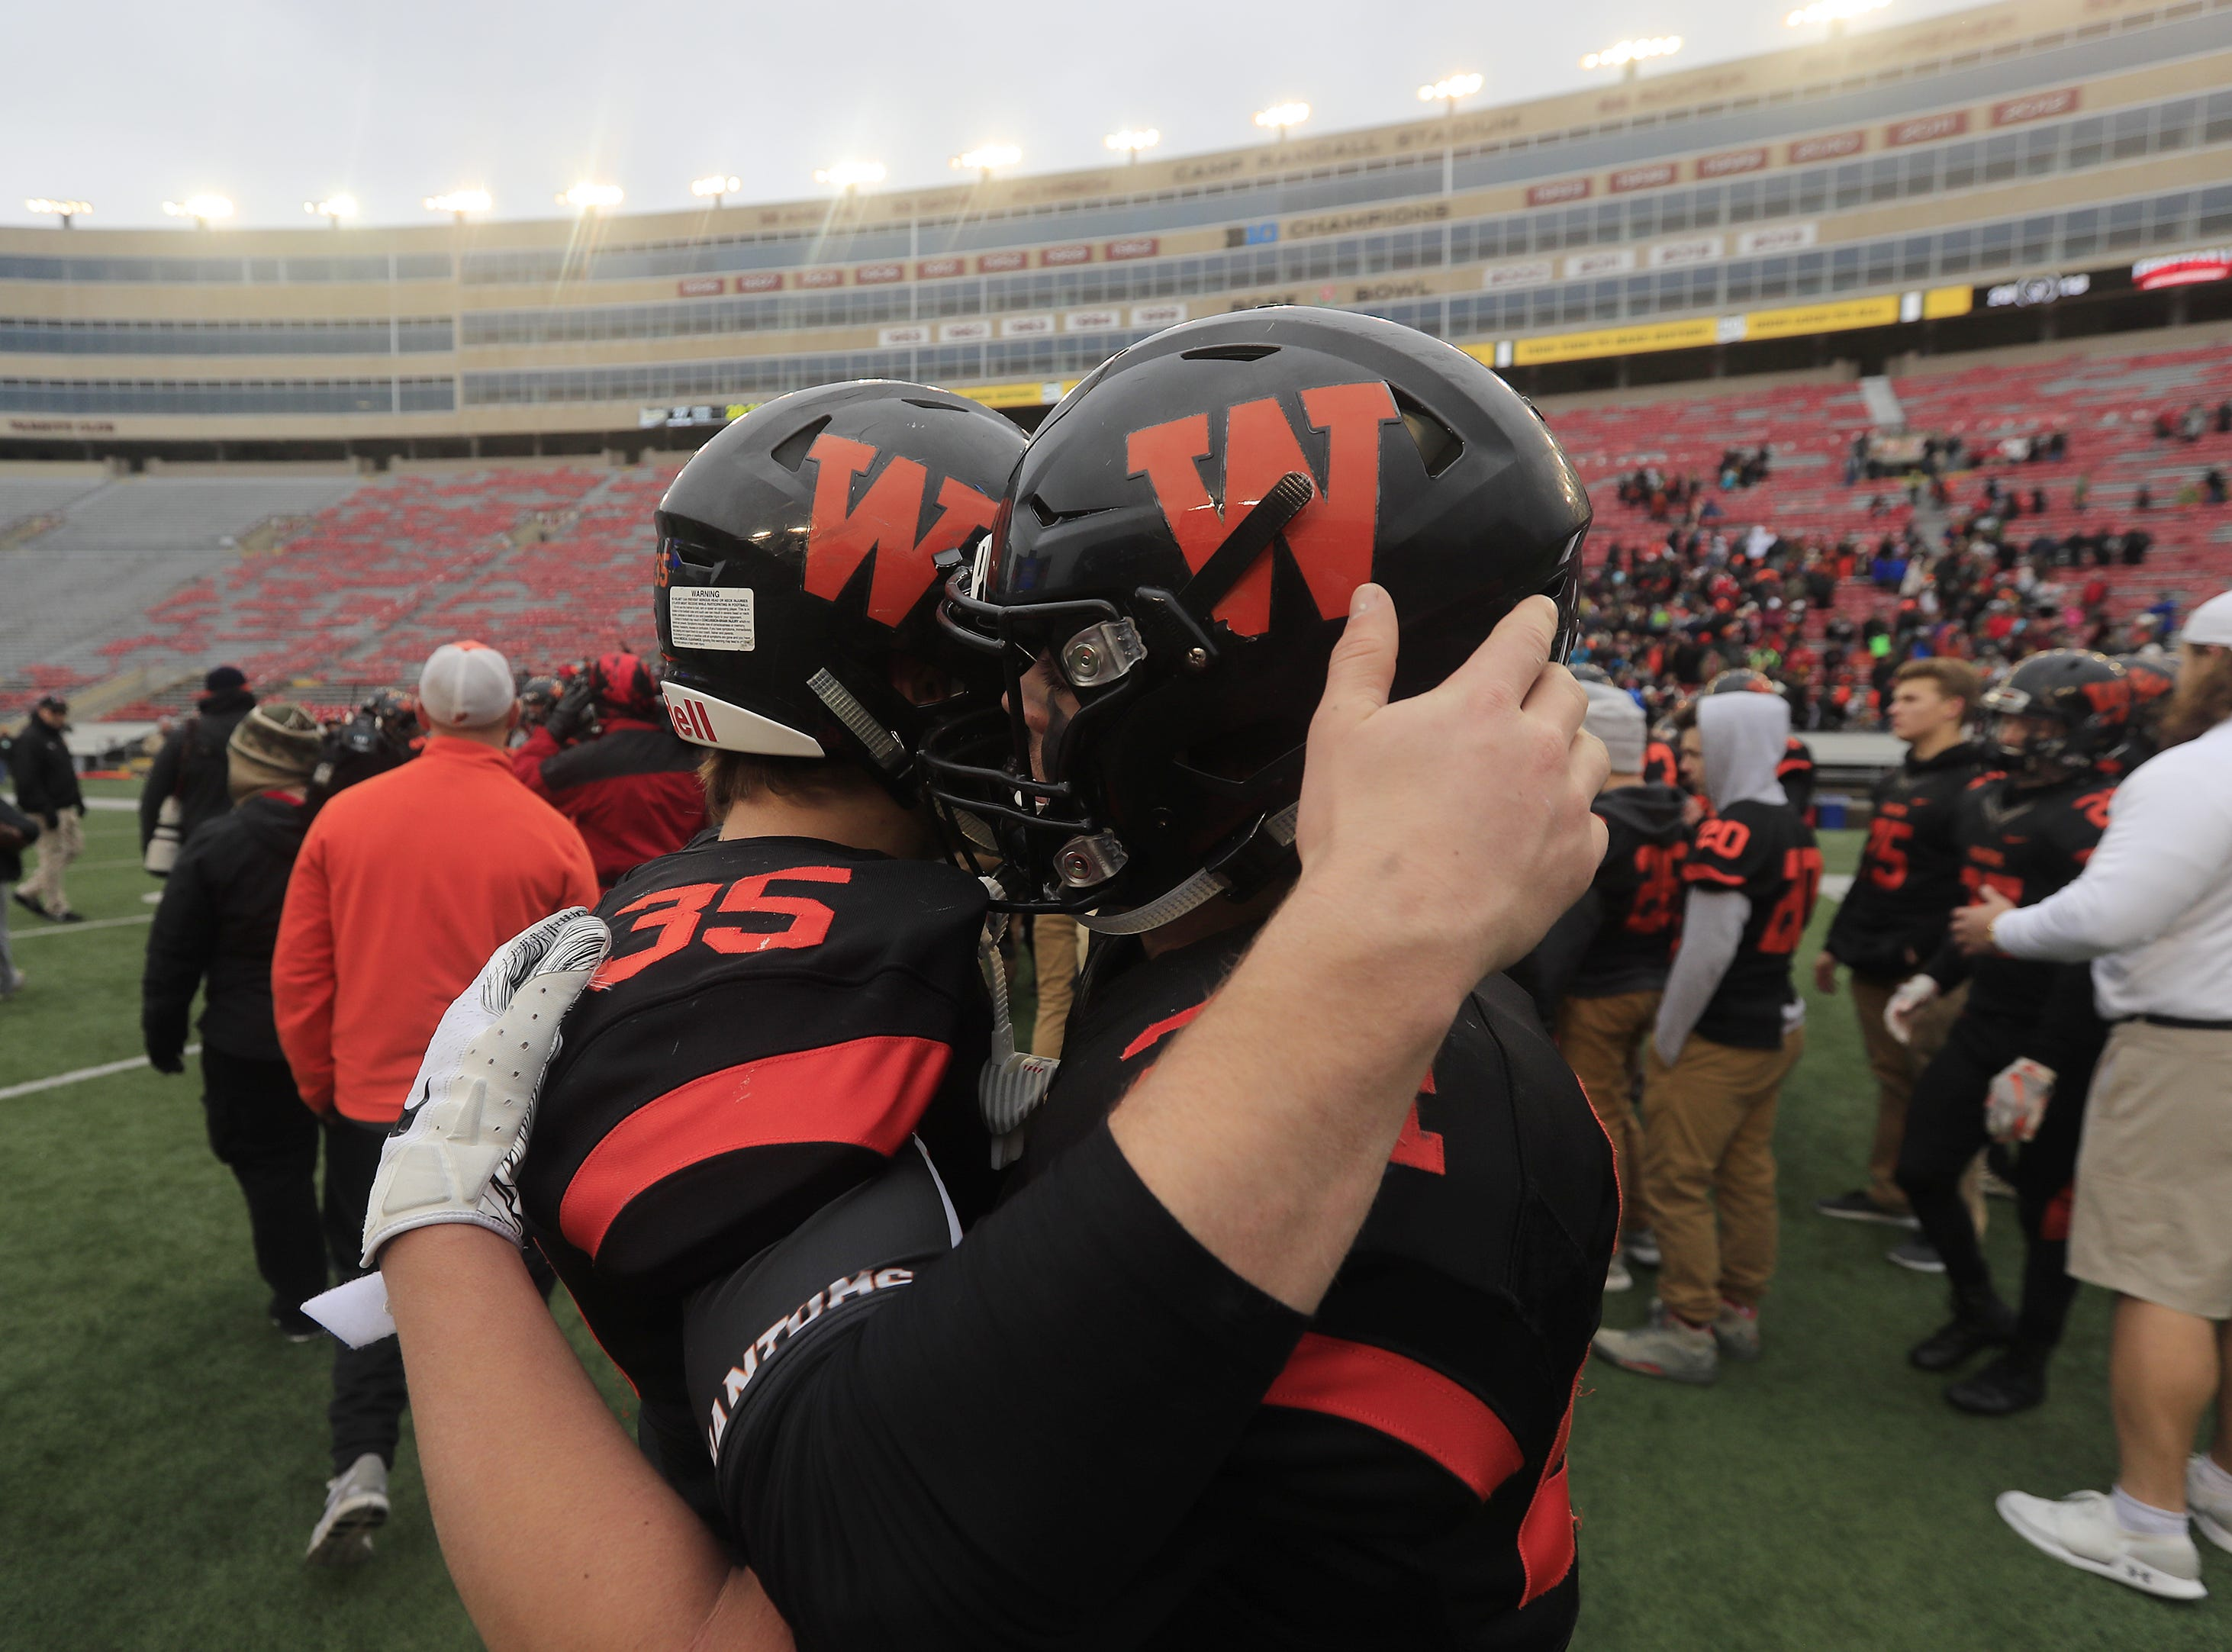 West De Pere's Alex Spitzer (35) and Sam Mommaerts (24) embrace after the Phantoms lost to Catholic Memorial in the WIAA Division 3 championship game at Camp Randall Stadium on Friday, November 16, 2018 in Madison, Wis.